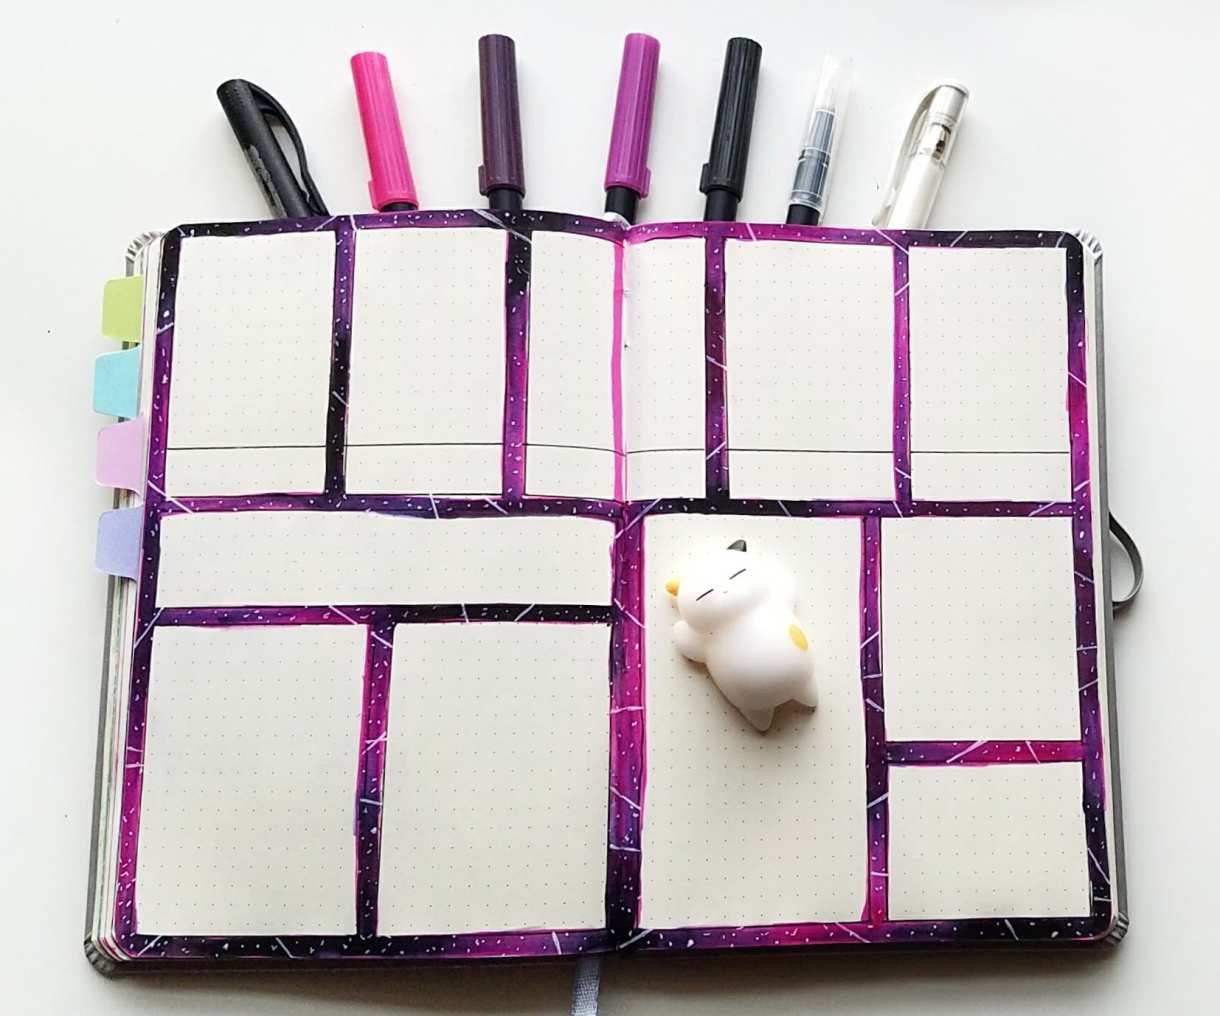 Learn how to create a galaxy style bullet journal layout